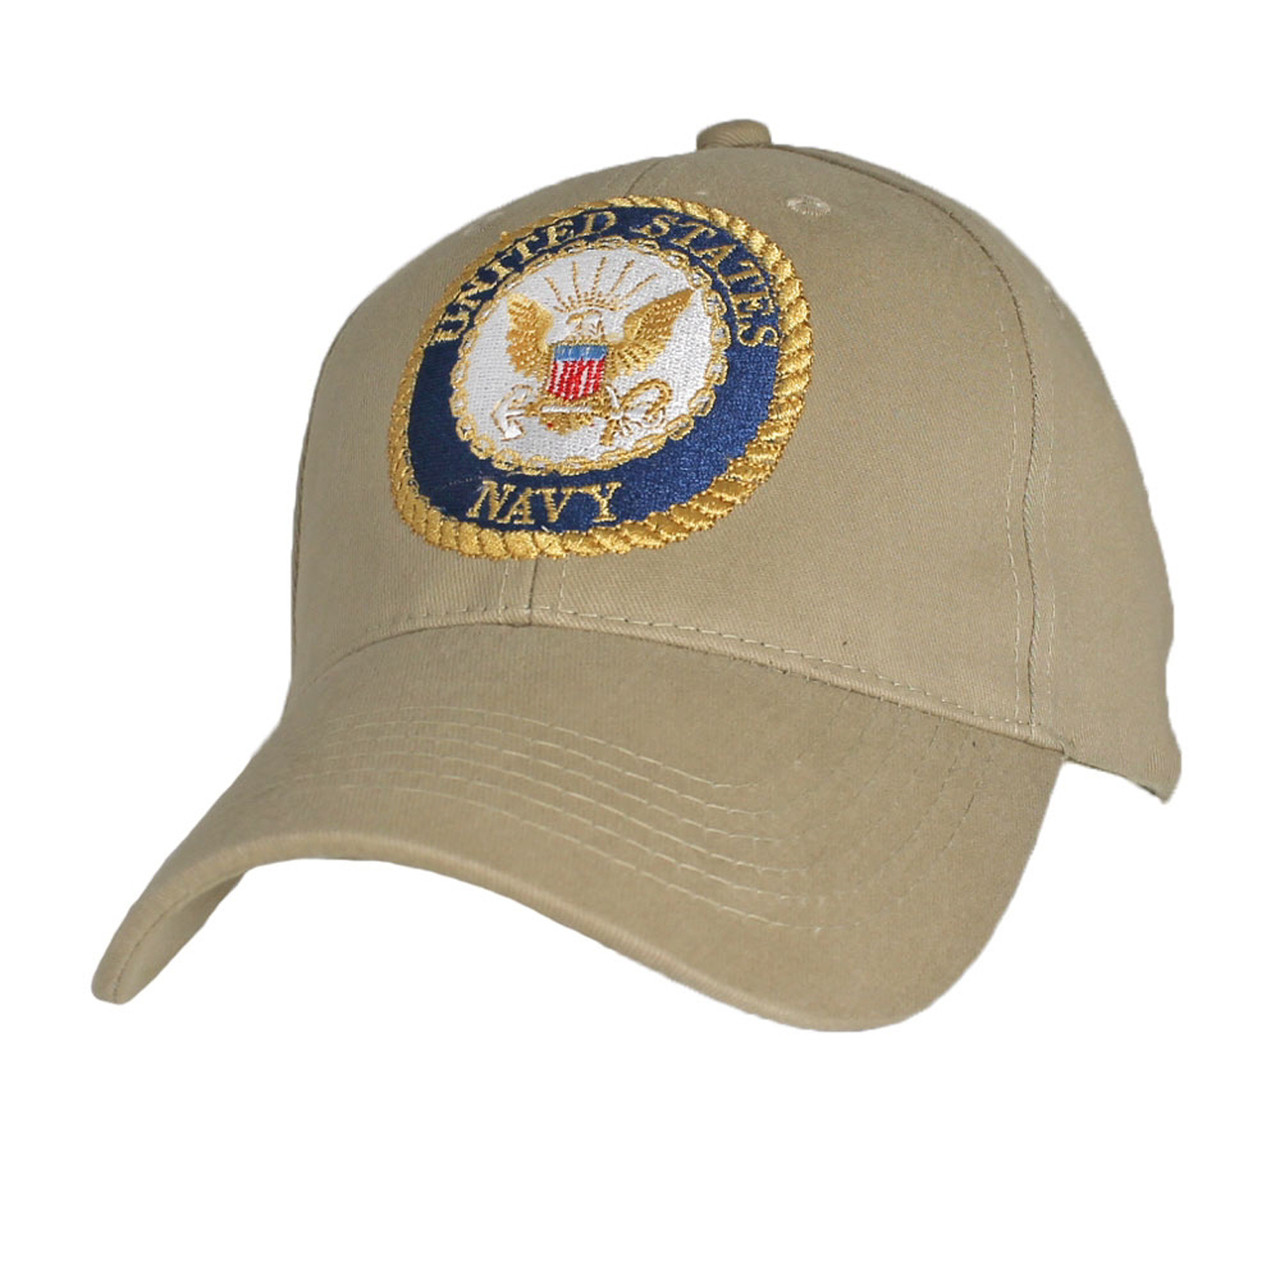 7213aaa57 discount code for navy seal hat 6ad89 4ce8b